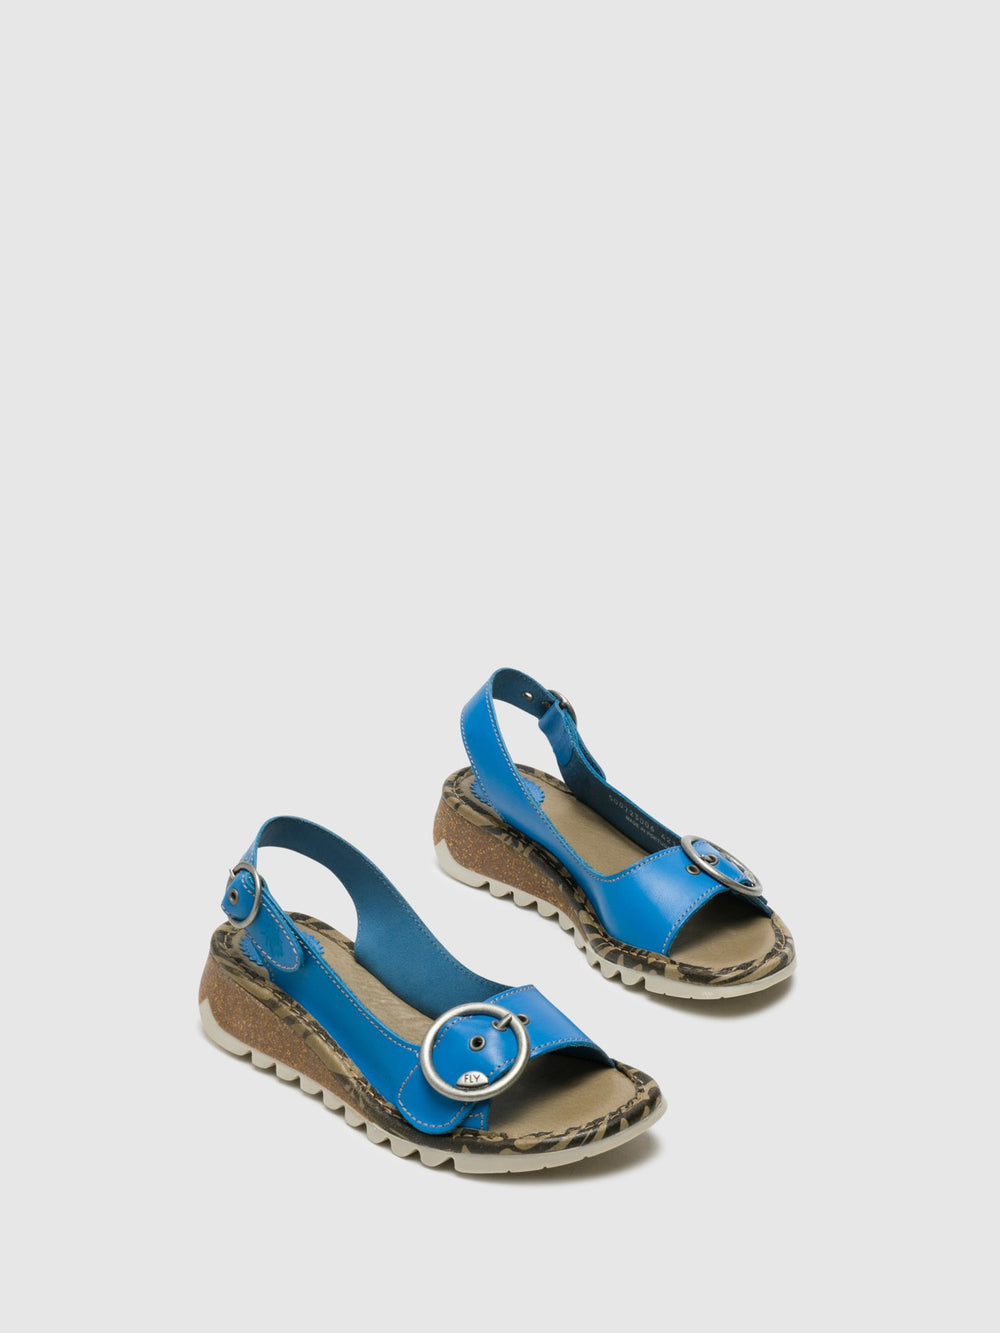 Buckle Sandals TRAM723FLY SMURF BLUE